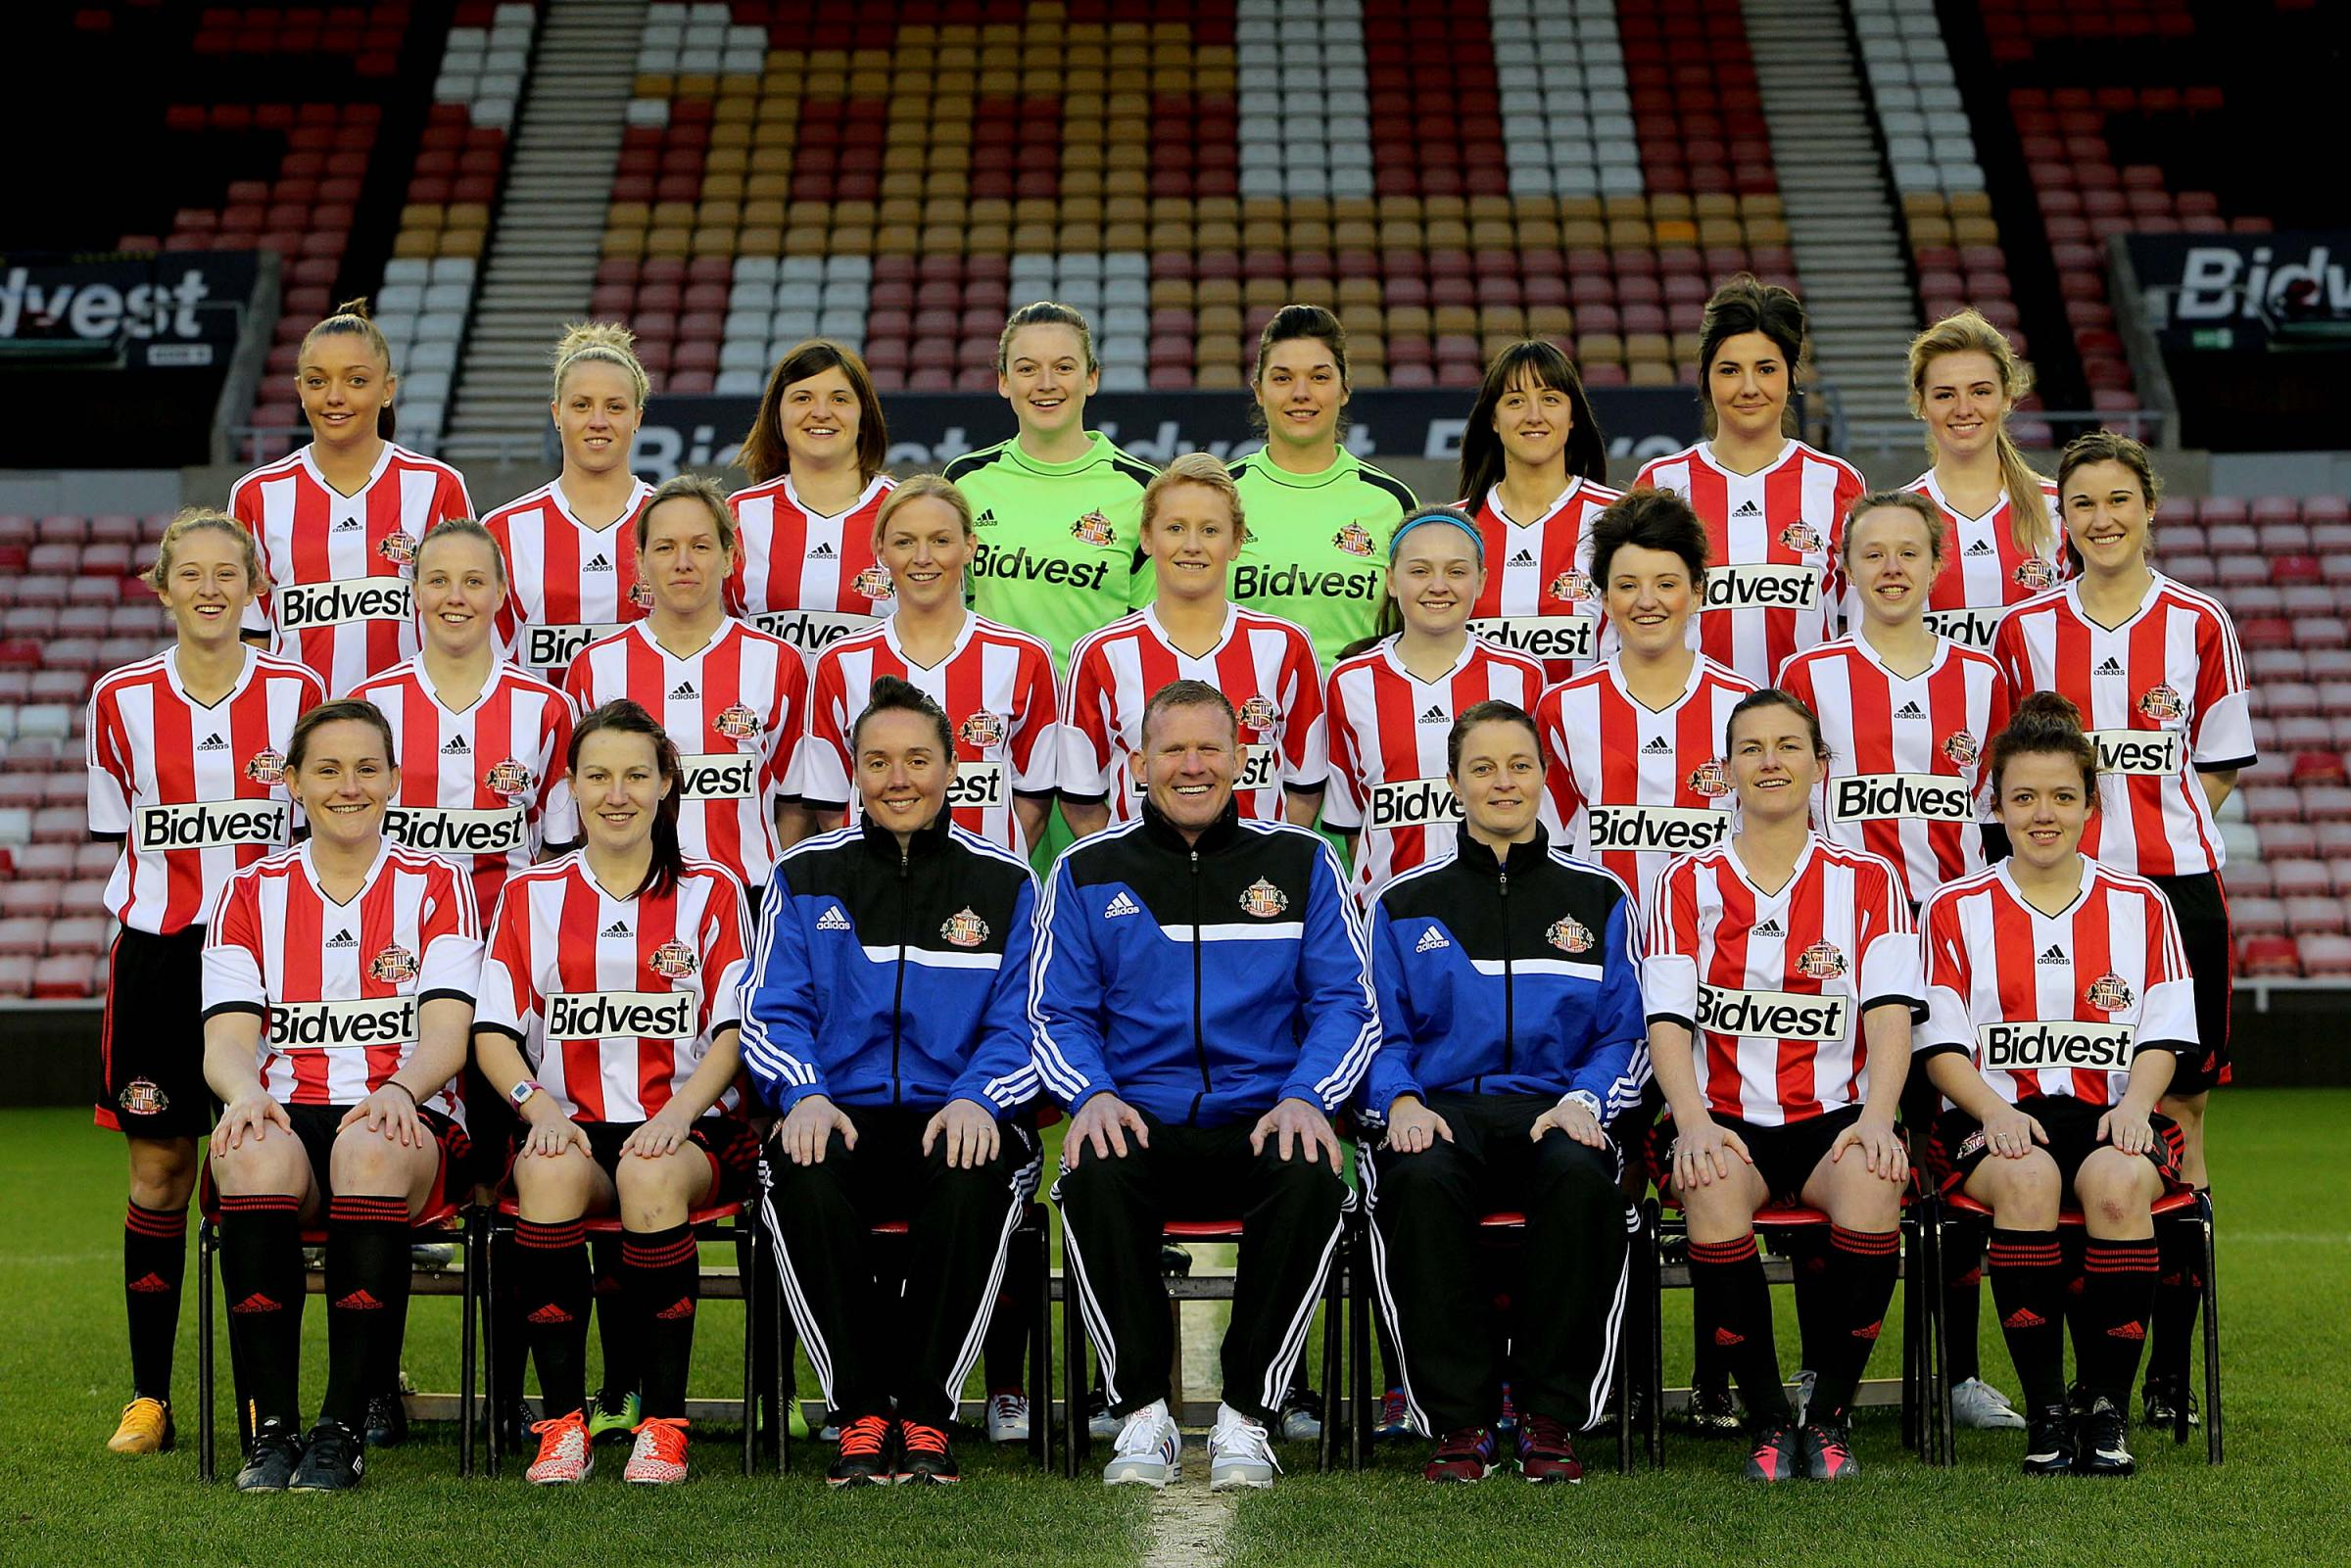 SUNDERLAND LADIES: The squad line up for their historic first team photo